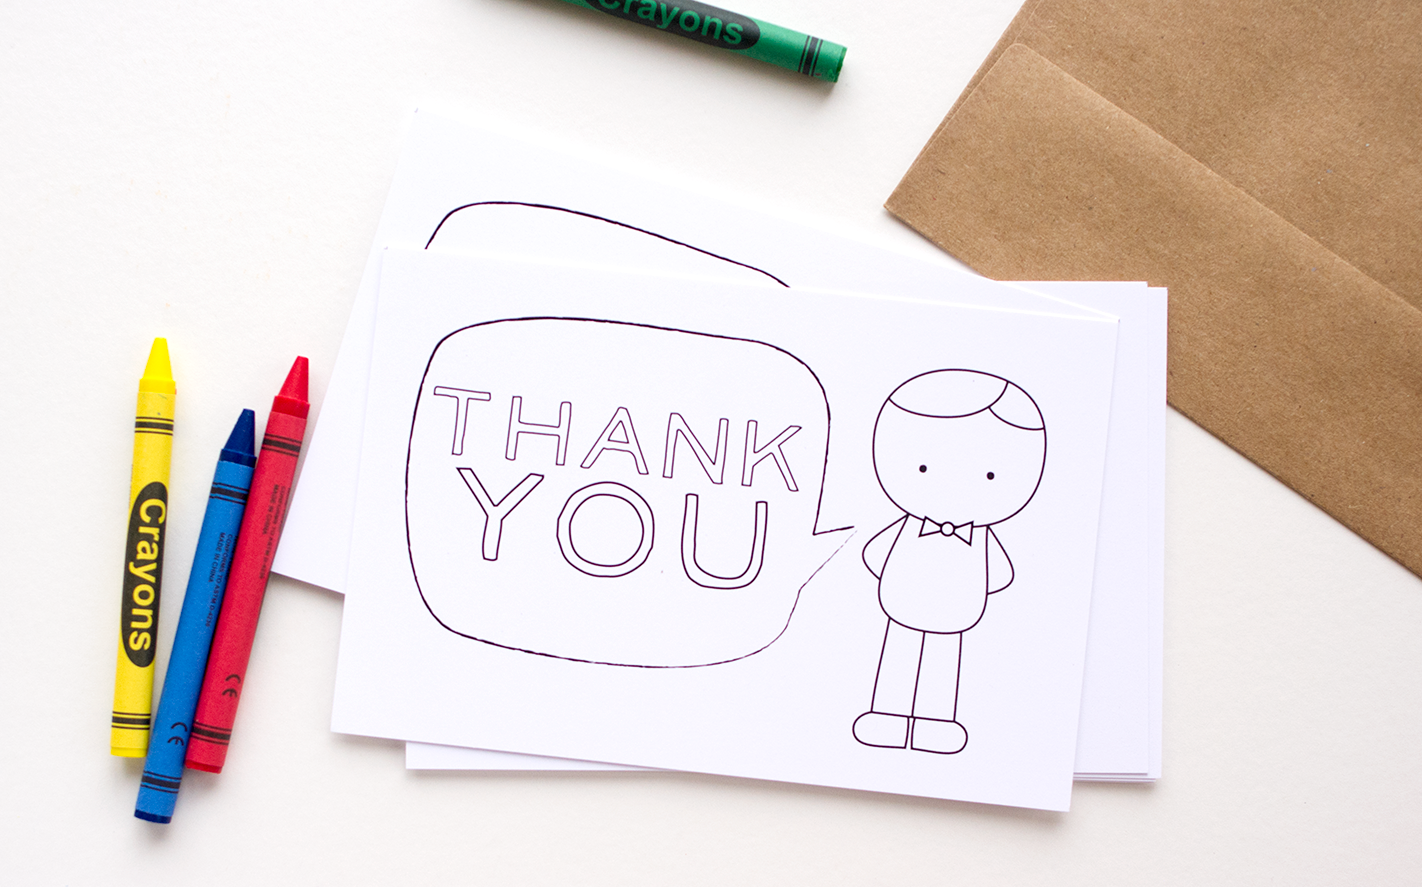 Printable Color-in Thank You Cards for Kids - The Mombot